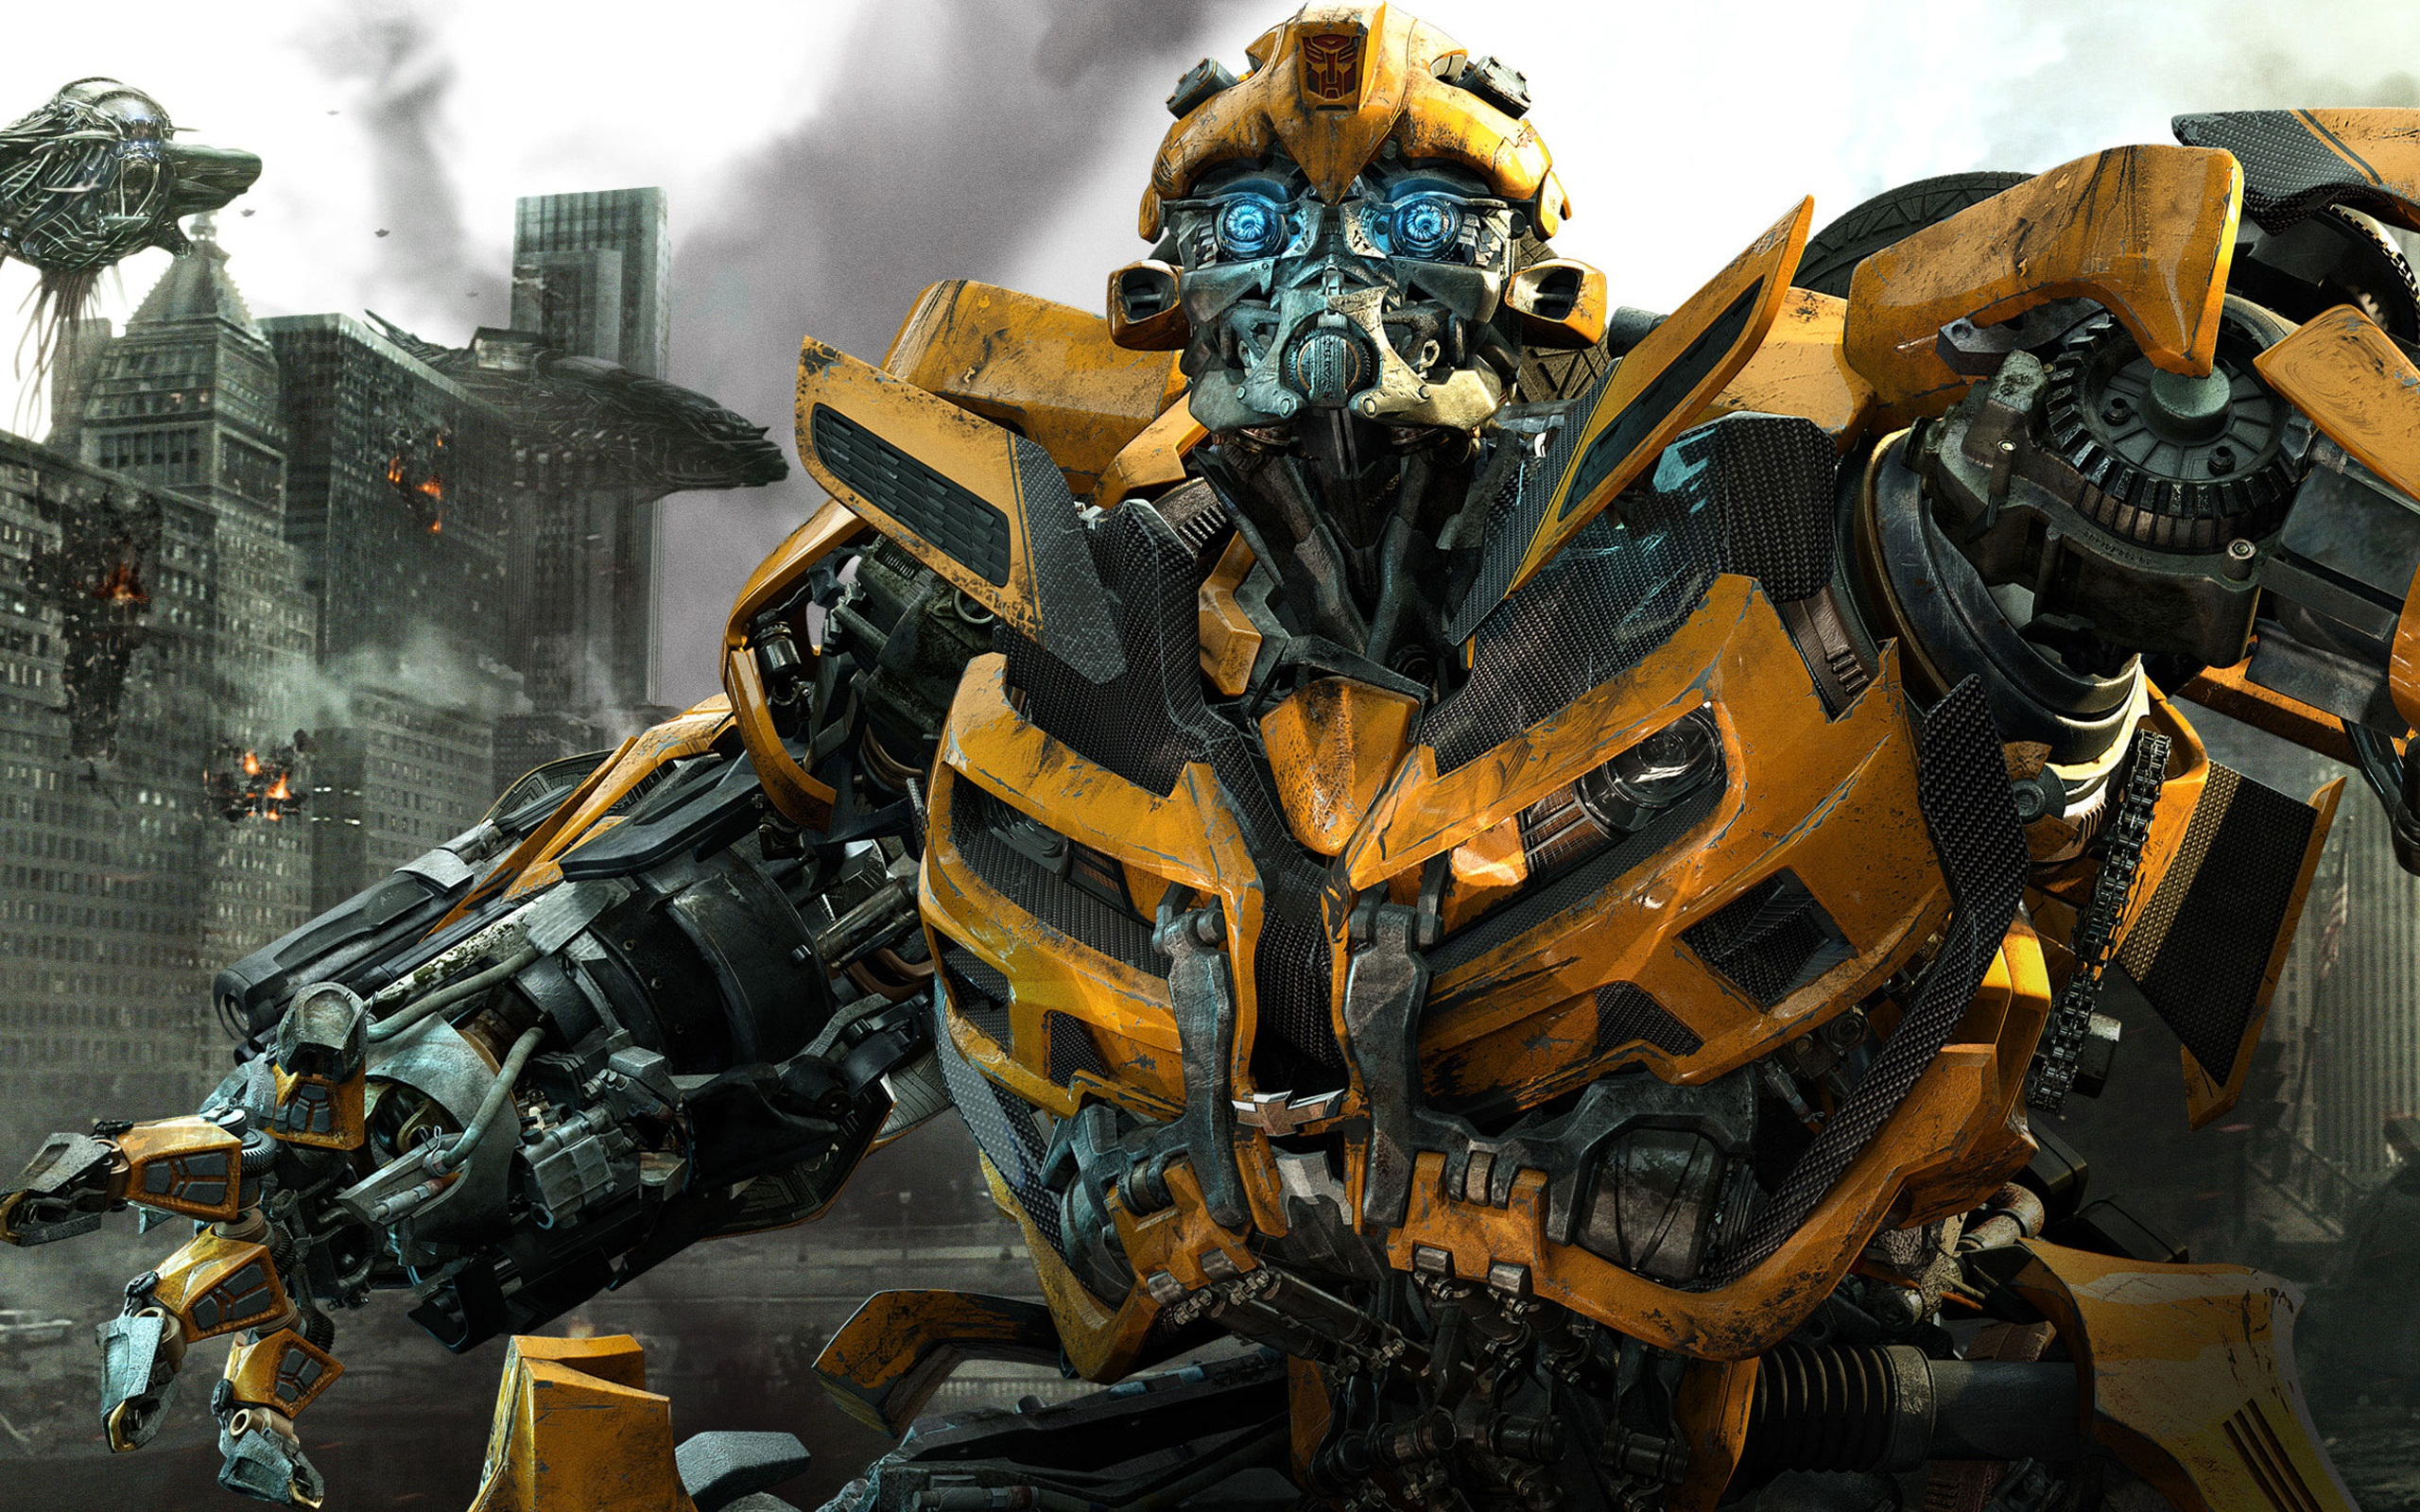 Bumblebee in Transformers 3 1754.98 Kb